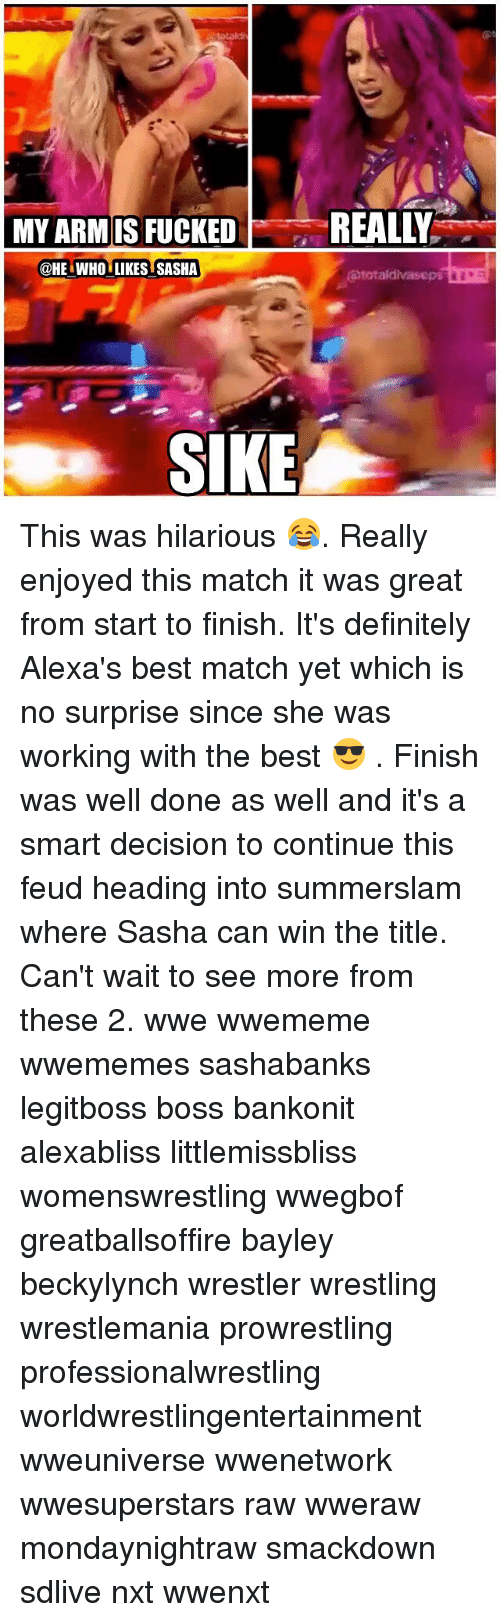 Finish: totald  MY ARM IS FUCKEDREALLY  @HE WHO LIKES SASHA  SIKE This was hilarious 😂. Really enjoyed this match it was great from start to finish. It's definitely Alexa's best match yet which is no surprise since she was working with the best 😎 . Finish was well done as well and it's a smart decision to continue this feud heading into summerslam where Sasha can win the title. Can't wait to see more from these 2. wwe wwememe wwememes sashabanks legitboss boss bankonit alexabliss littlemissbliss womenswrestling wwegbof greatballsoffire bayley beckylynch wrestler wrestling wrestlemania prowrestling professionalwrestling worldwrestlingentertainment wweuniverse wwenetwork wwesuperstars raw wweraw mondaynightraw smackdown sdlive nxt wwenxt